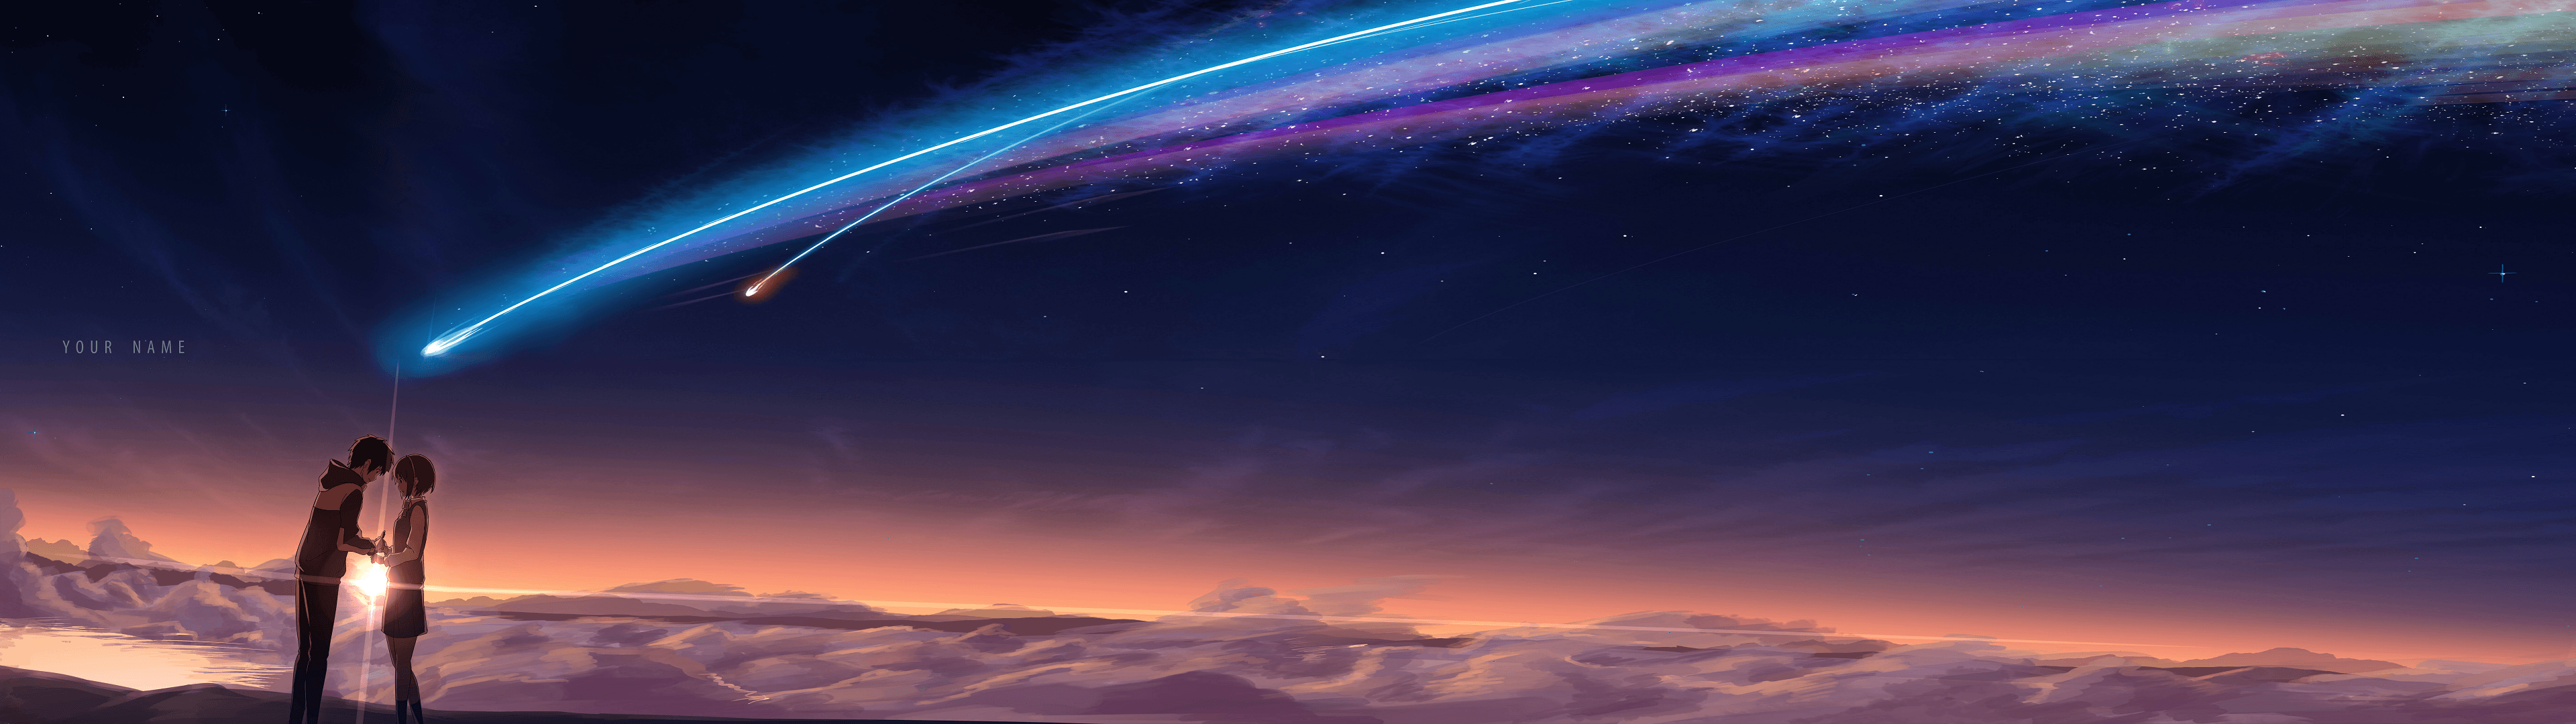 3840 X 1080 Wallpapers Top Free 3840 X 1080 Backgrounds Wallpaperaccess